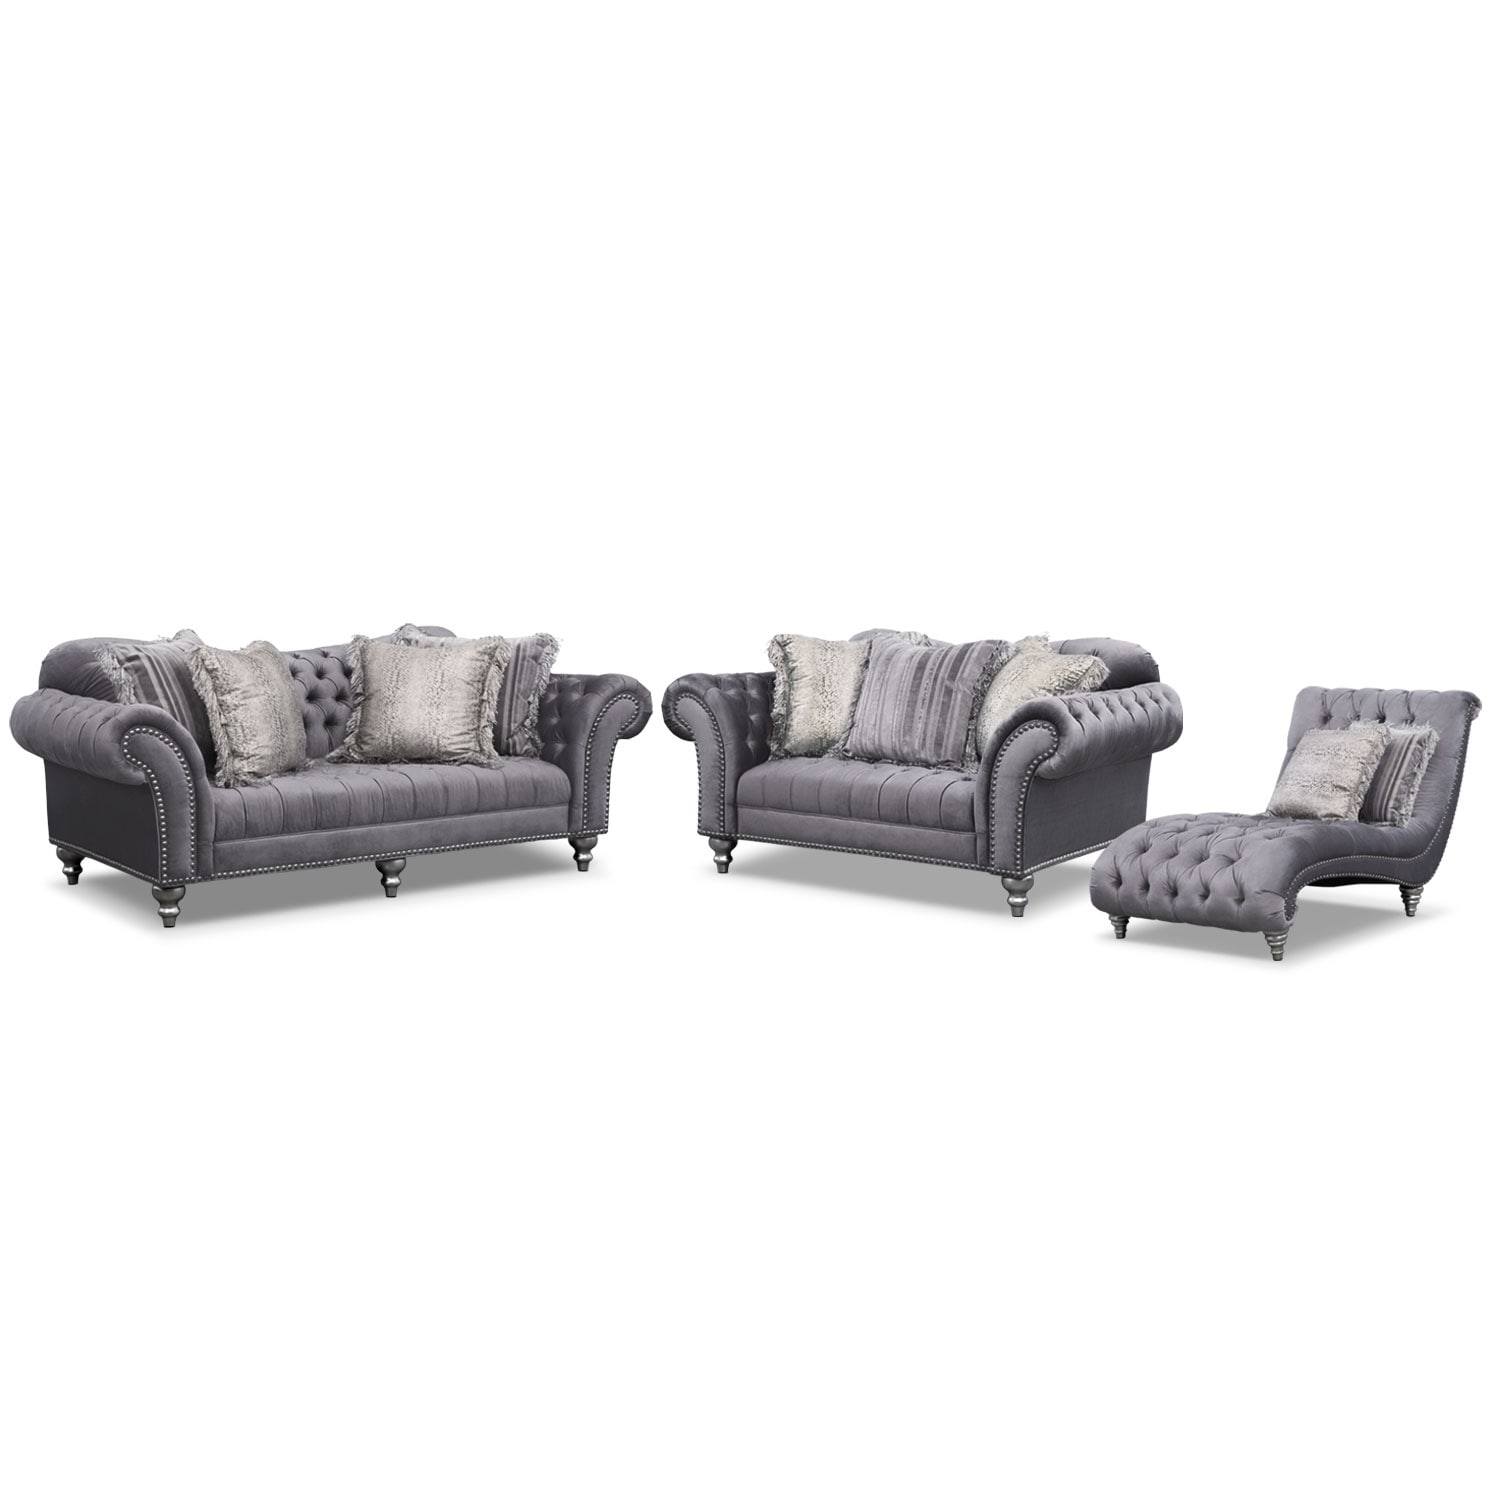 Sofa loveseat and chaise set hodan sofa chaise ashley for Ashley chaise lounge sofa